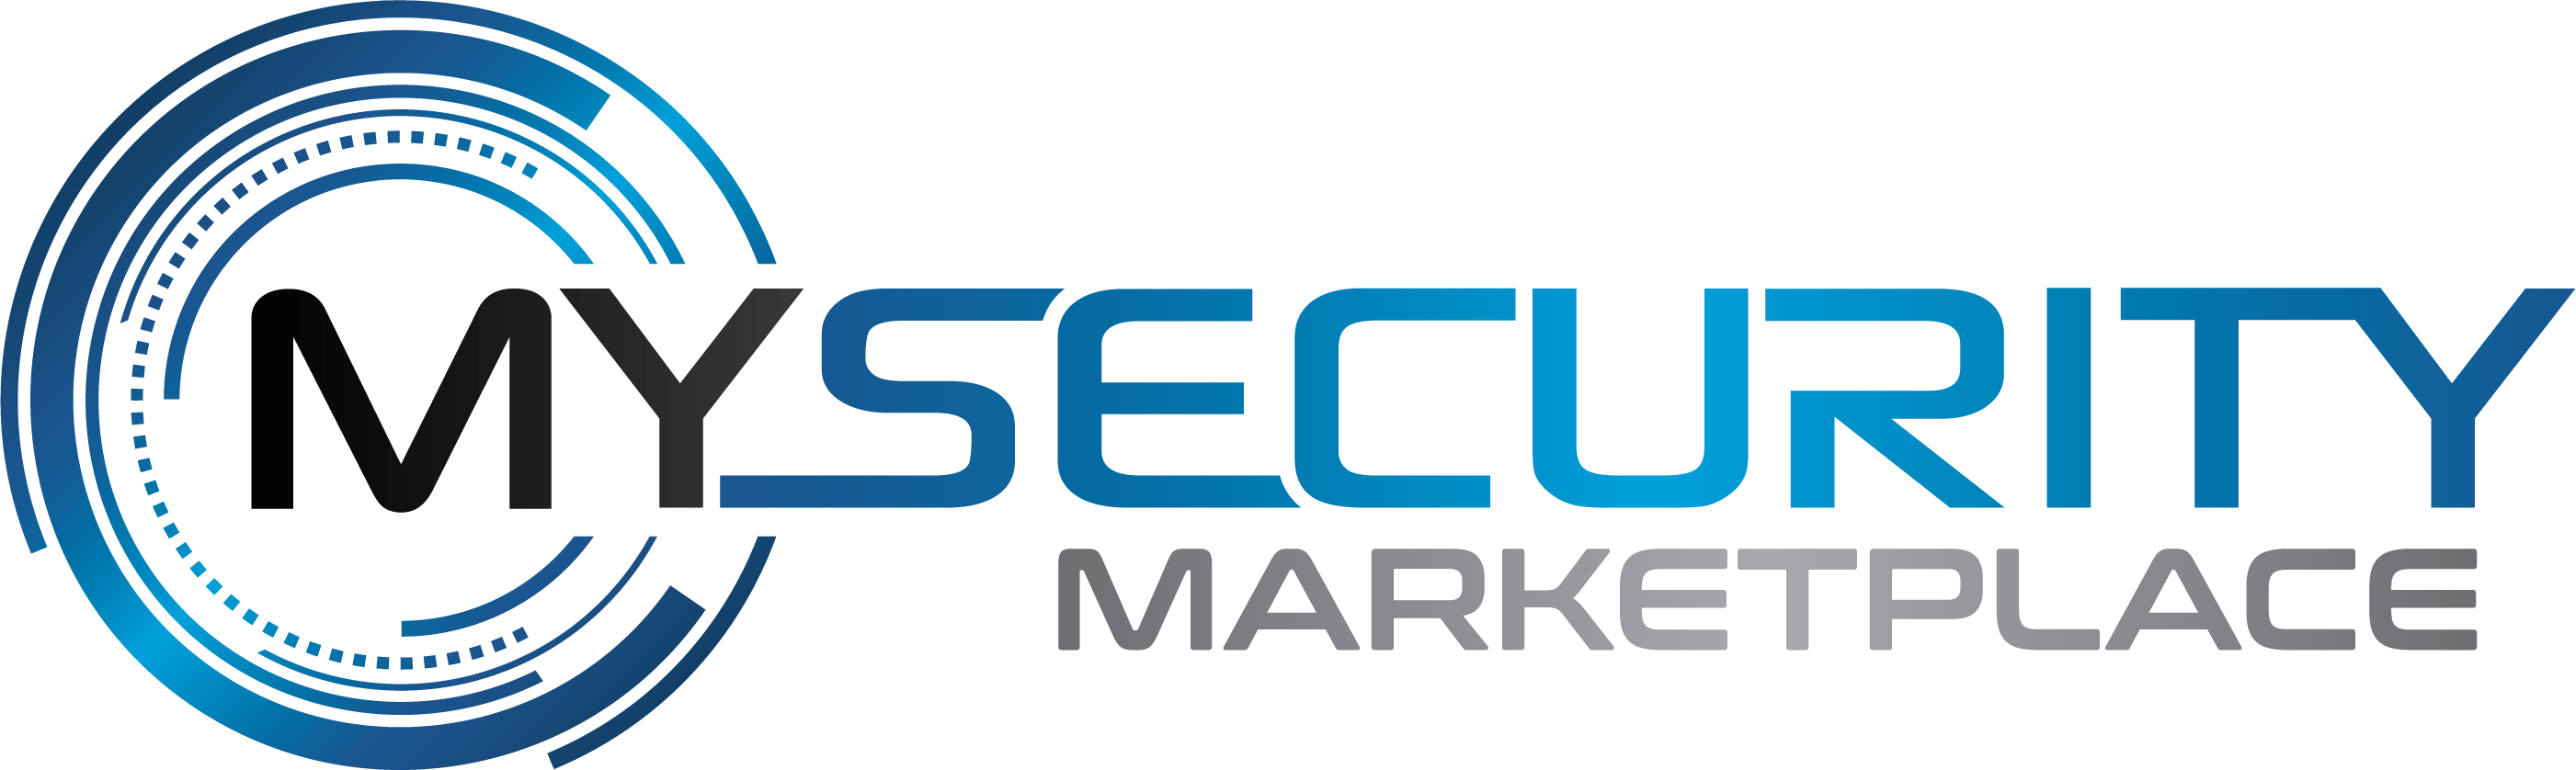 MySecurityMedia_Marketplace-1